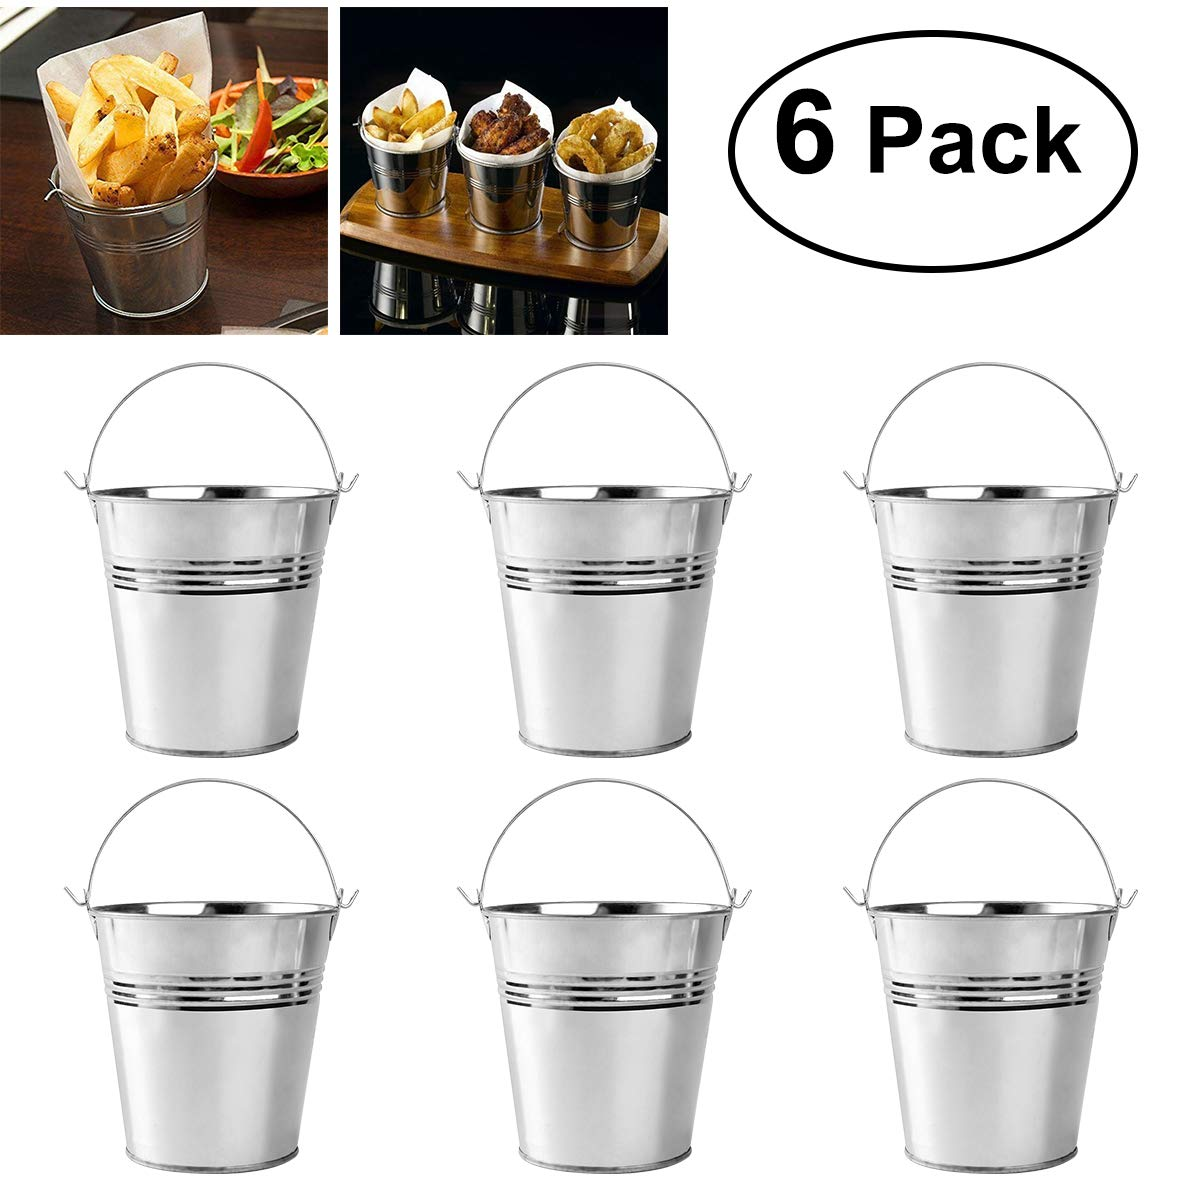 OUNONA Mini Metal Bucket Set of 6 /Mini Food Containers/Succulent Wedding Buckets 10.5x7.2x10.5cm